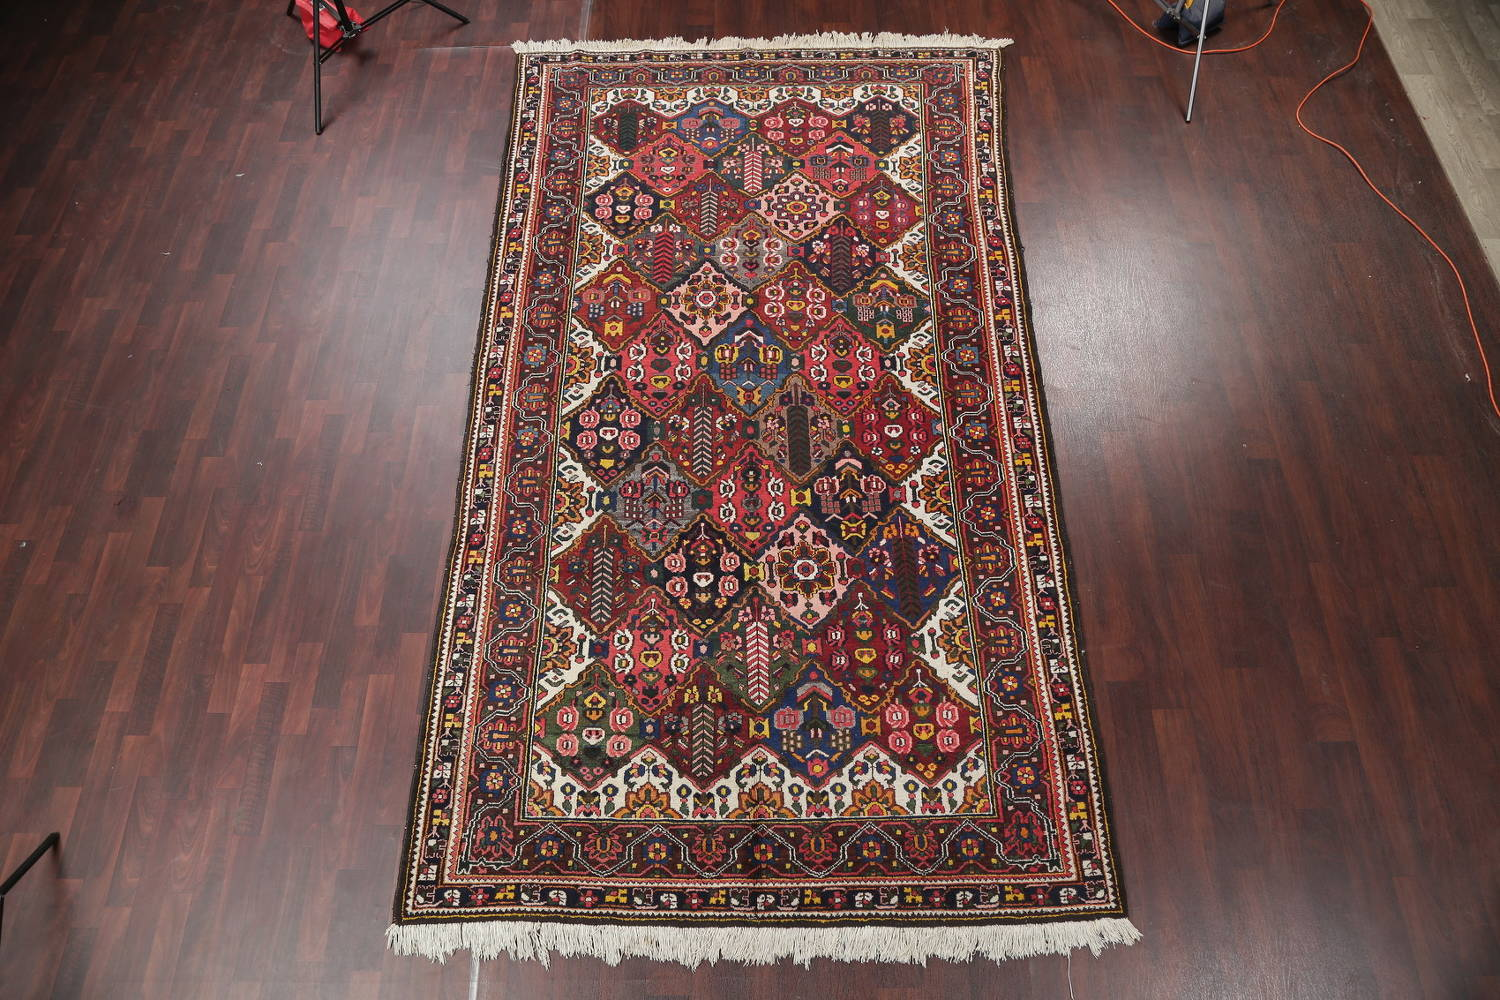 Antique Vegetable Dye Bakhtiari Persian Hand-Knotted Area Rug 7x12 image 2